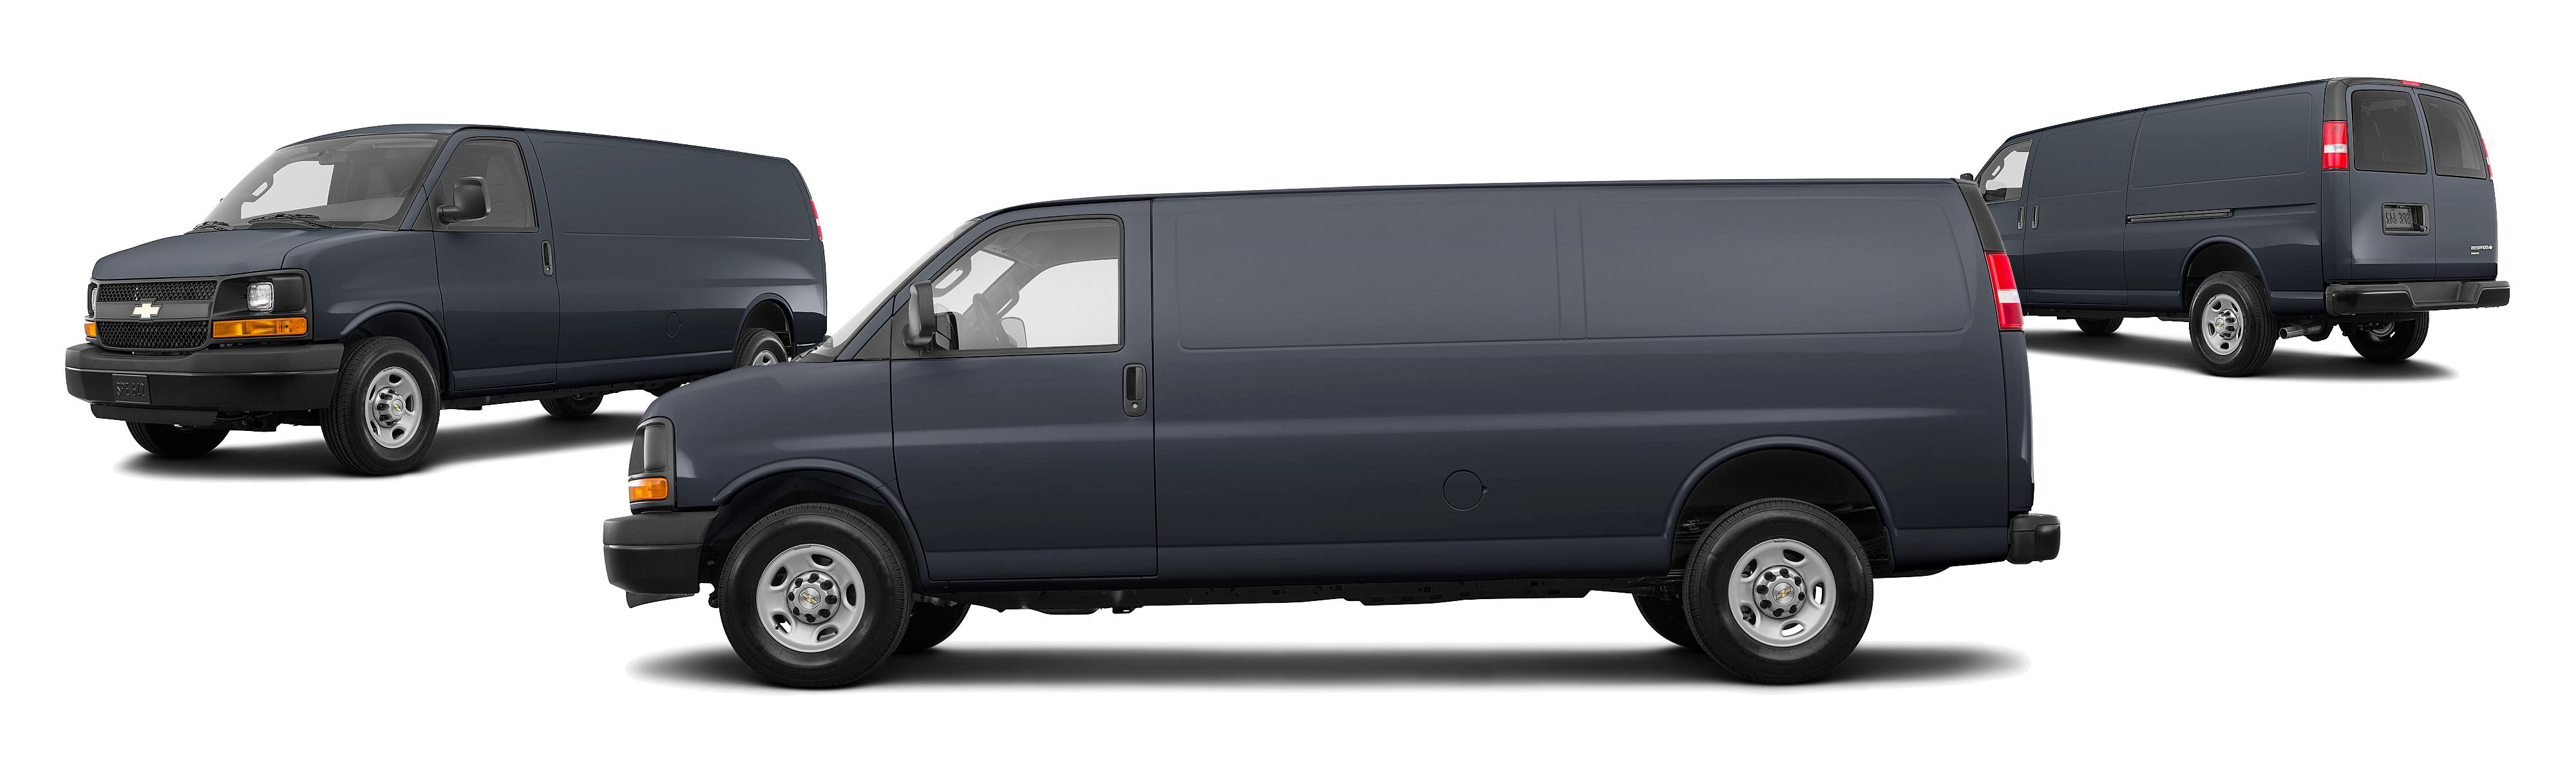 chevy express extended interior dimensions. Black Bedroom Furniture Sets. Home Design Ideas